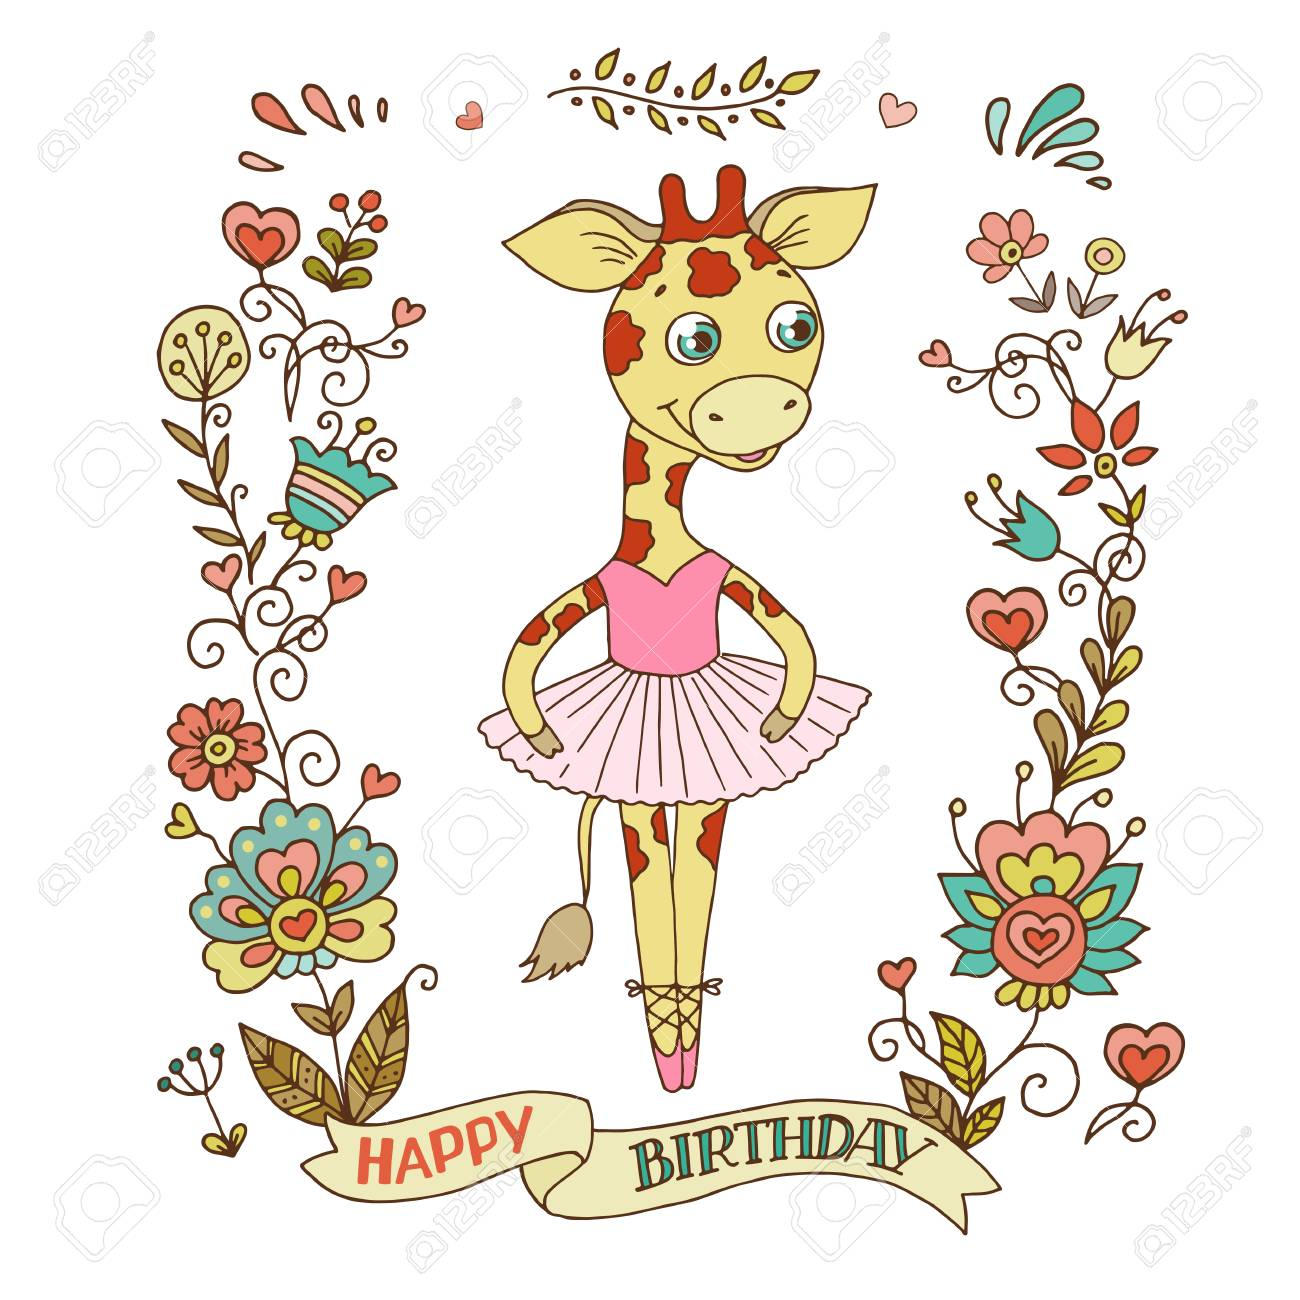 free clipart birthday flowers ; 88271051-cute-giraffe-ballerina-in-a-tutu-with-vintage-frame-of-flowers-the-phrase-on-a-ribbon-happy-birthday